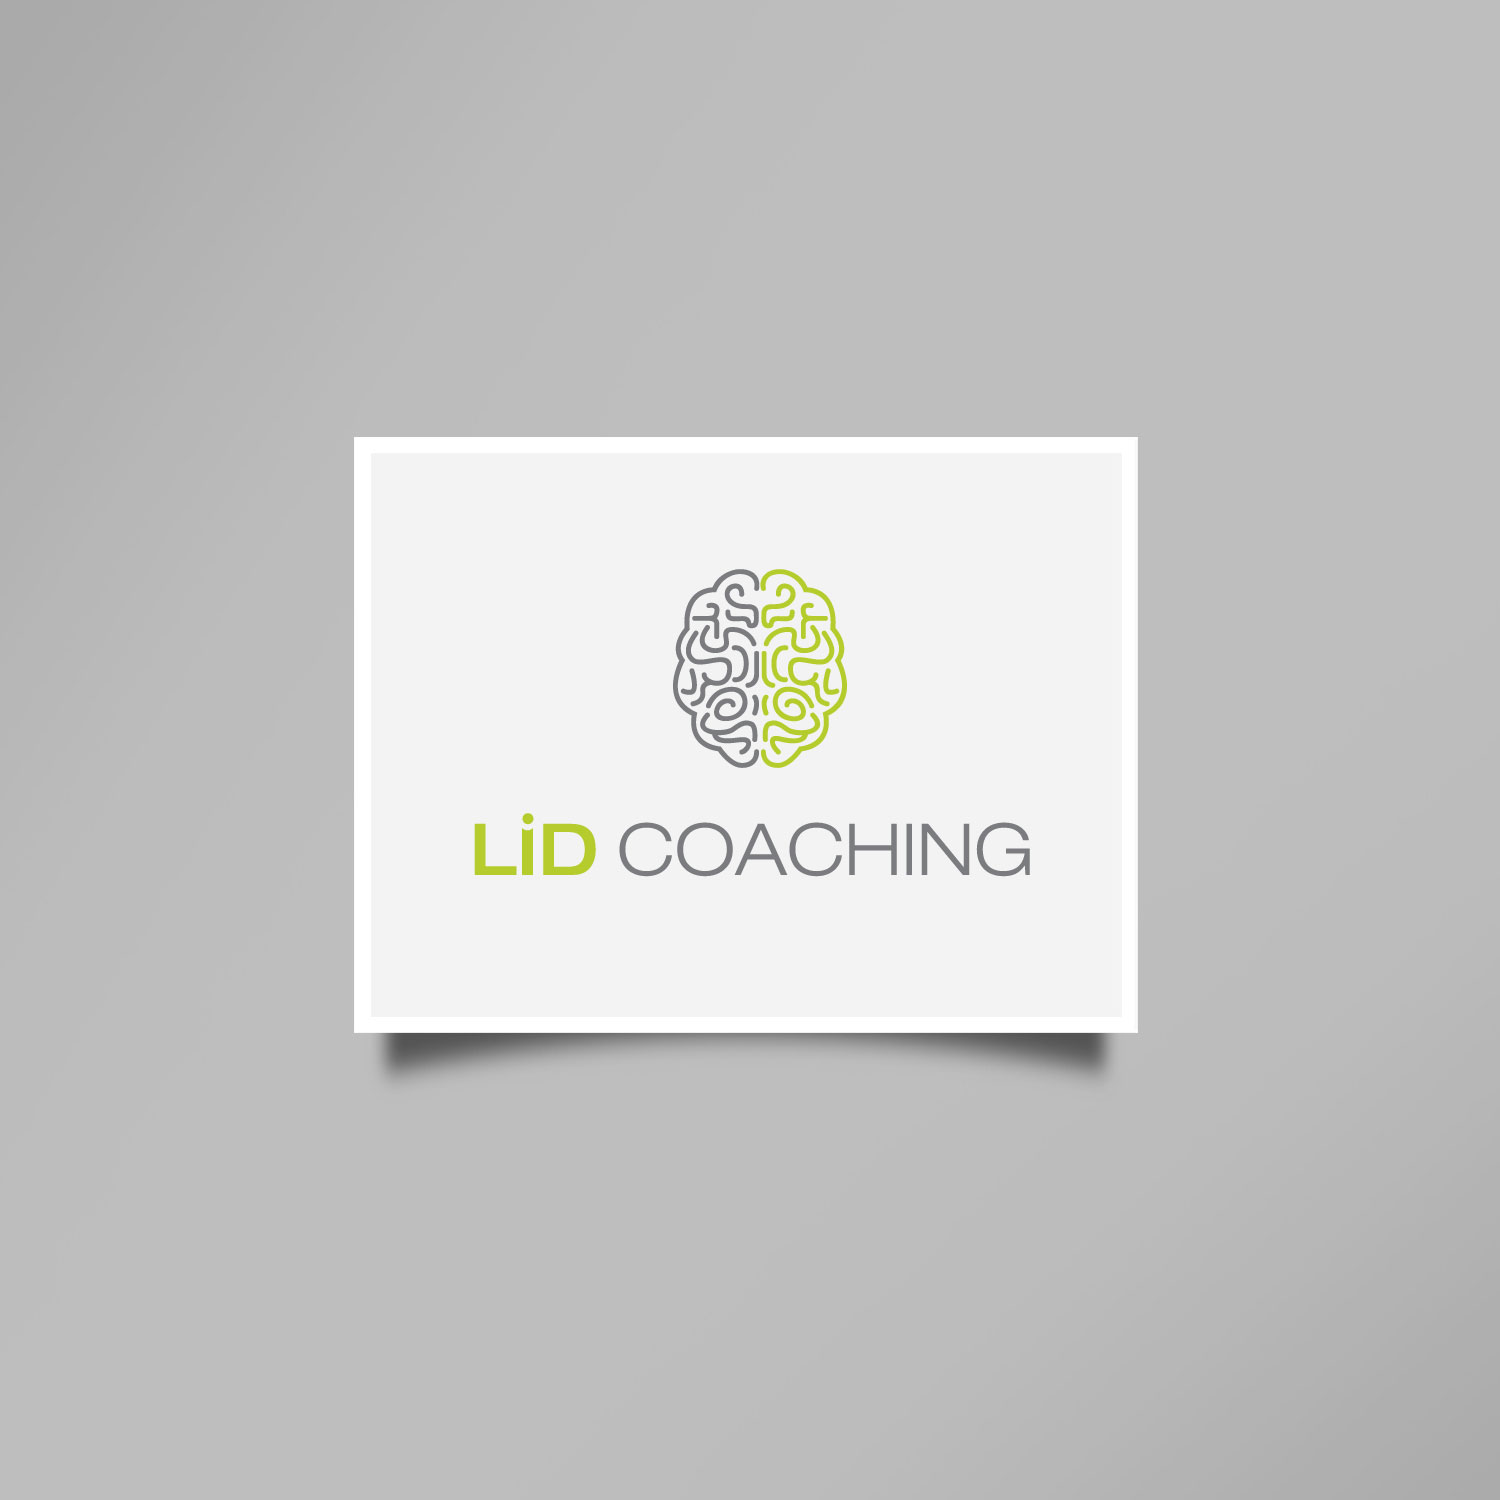 Logo Lid Coaching